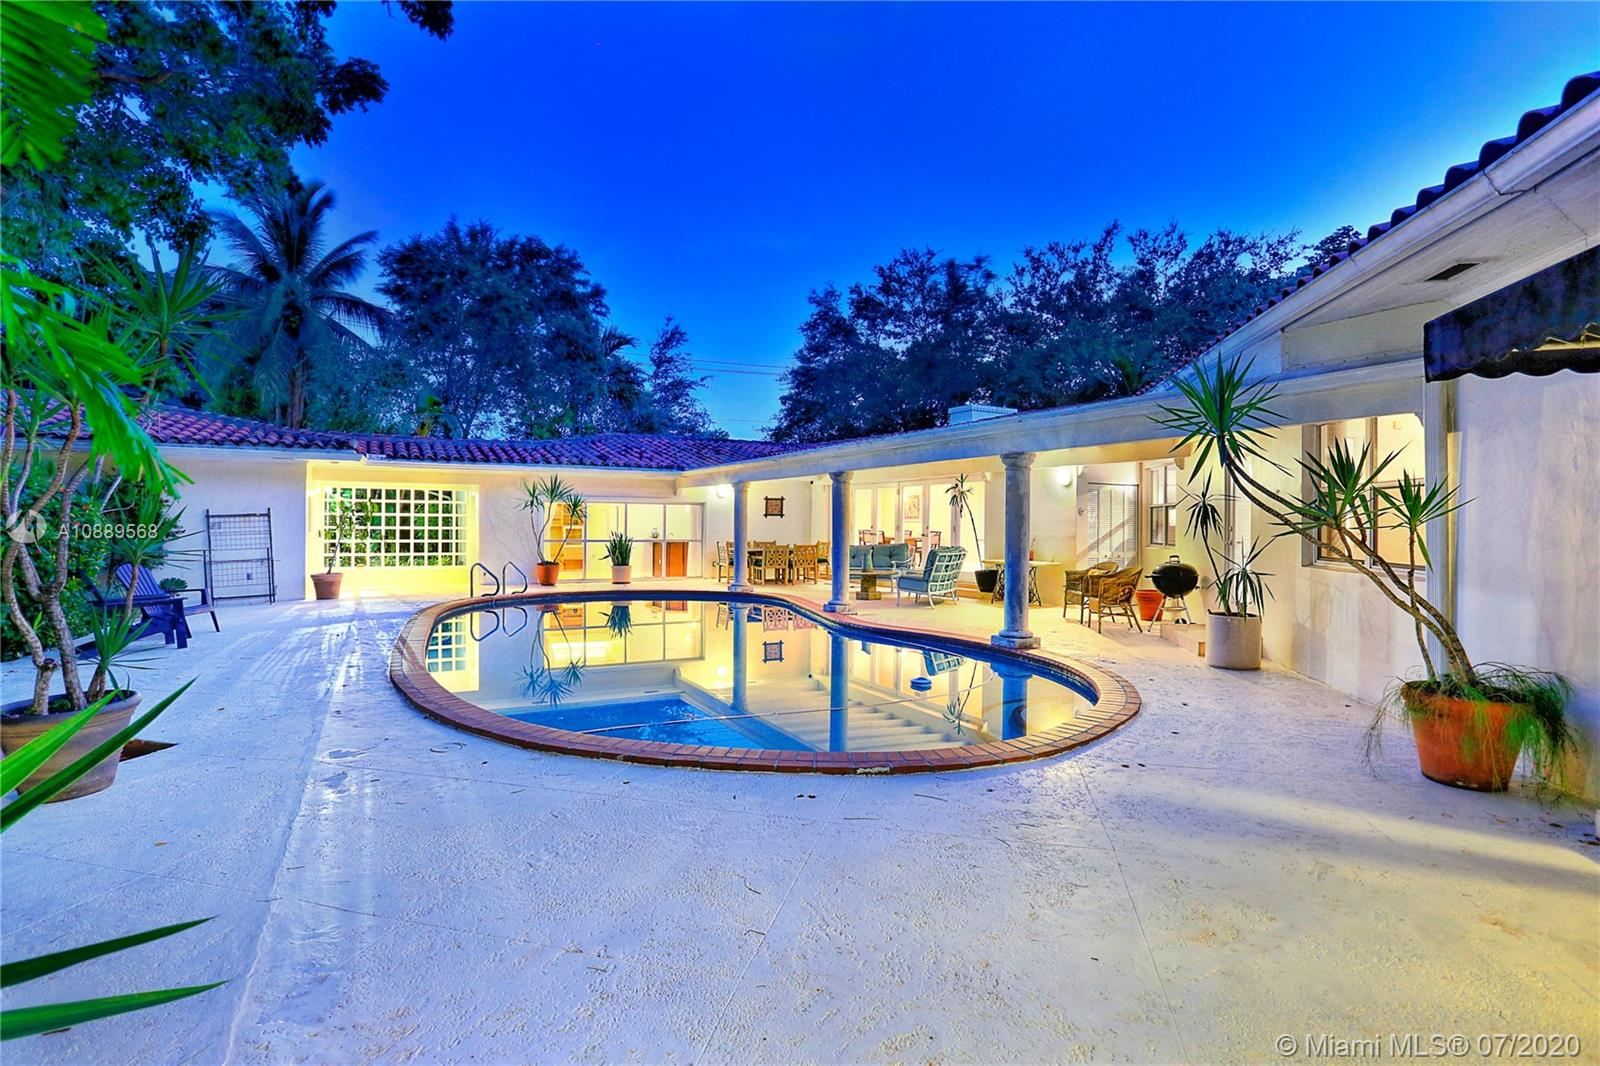 This lovely, spacious, & well maintained 4 bed/4 bath corner home with pool nestled in South Coral Gables sits on a half-acre lot (19,200 sq ft lot). With an open living to dining area featuring wood high ceilings, it naturally flows out to a spacious terrace accessible from many points. Features: marble & wood floors, fireplace, split floor plan, an oversized 2-car garage equipped with an electric vehicle charging station. Updated kitchen with s/s appliances, granite countertops, breakfast nook & an adjacent laundry room. The Family room has a built-in wet bar & an updated bathroom. The Master Suite has 2 large walk-in closets. Two of the bedrooms share a Jack & Jill bathroom. The lush backyard has a built-in deck surrounding beautiful gumbo limbo trees, perfect to relax & entertain.